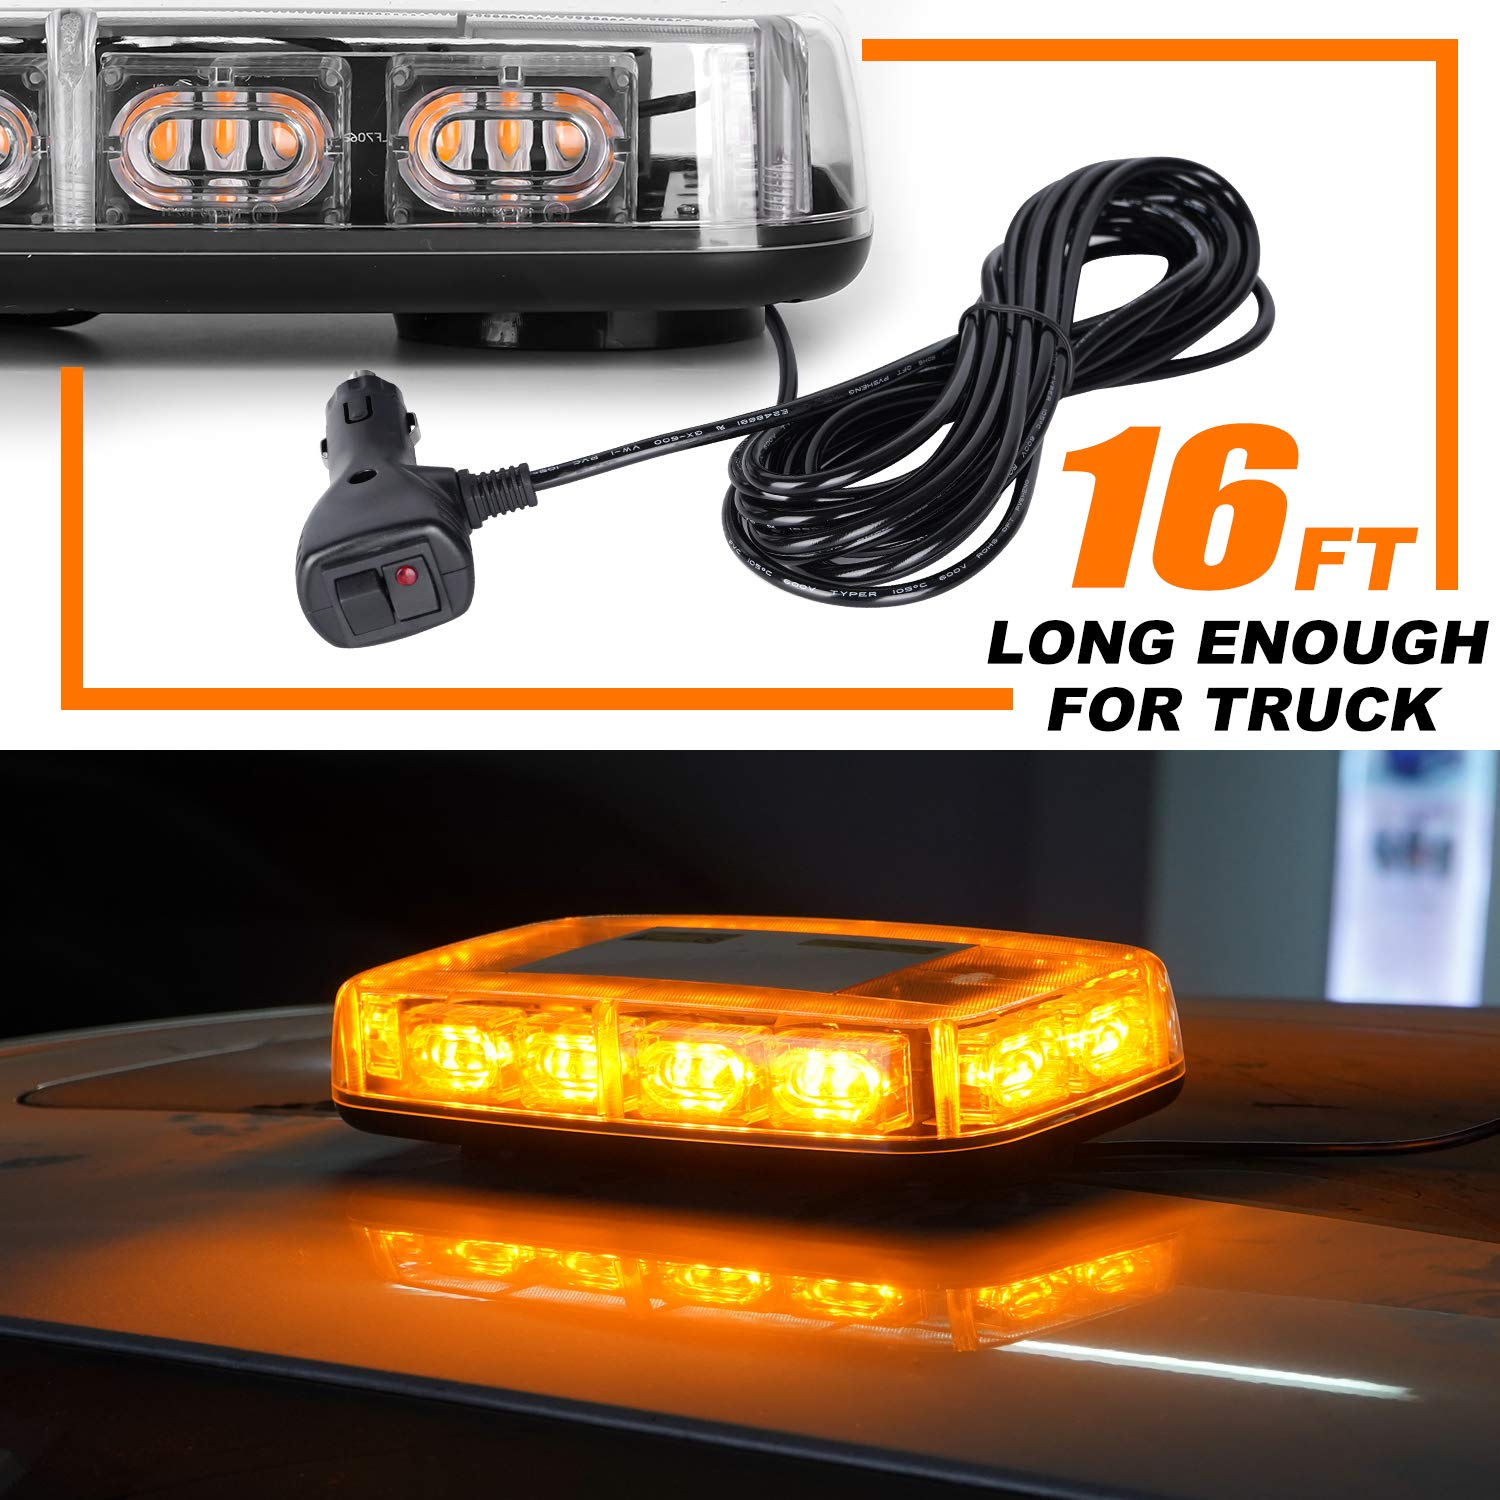 Emergency Hazard Warning Safety Flashing Strobe Light Bar for Truck Car Waterproof and Magnetic Mount 12-24V VKGAT 36 LED Roof Top Strobe Lights Amber